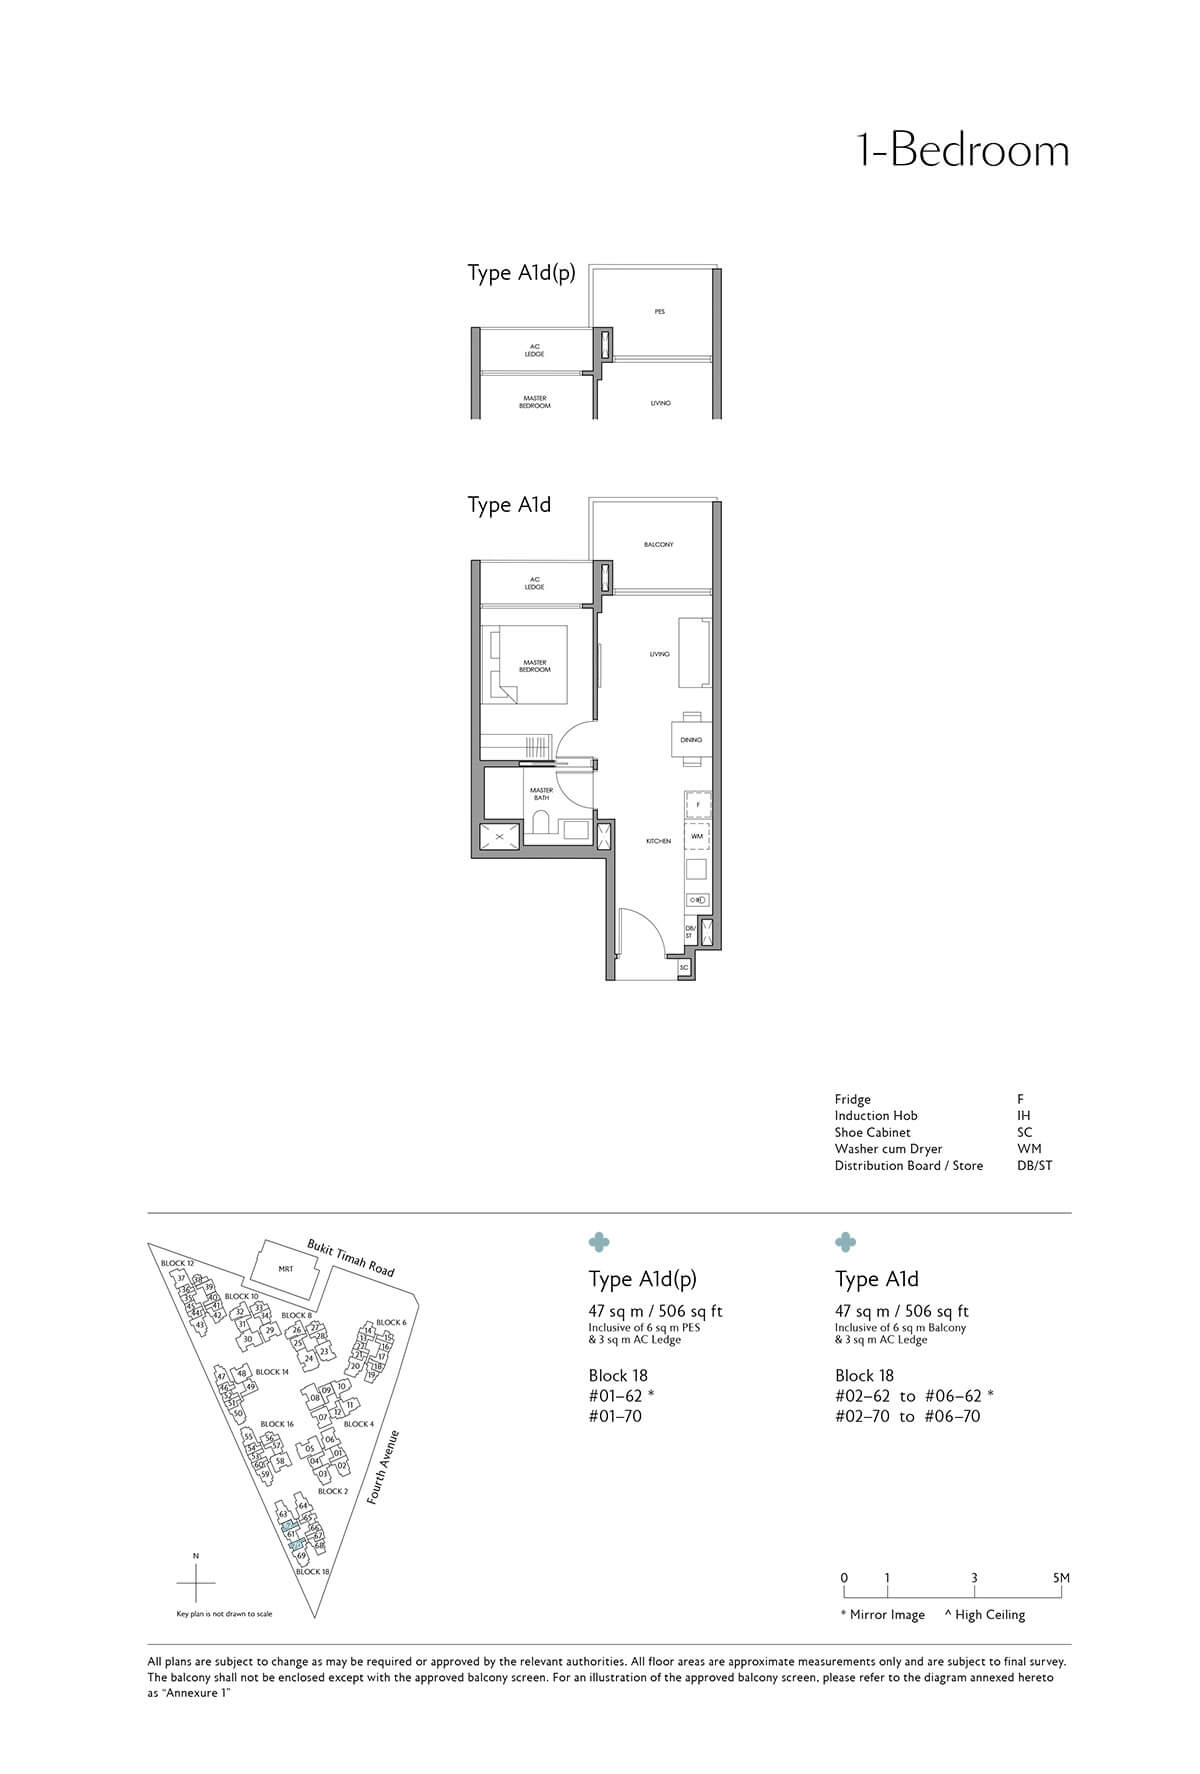 Fourth Avenue Residences Floor Plan 1 Bedroom Type A1d